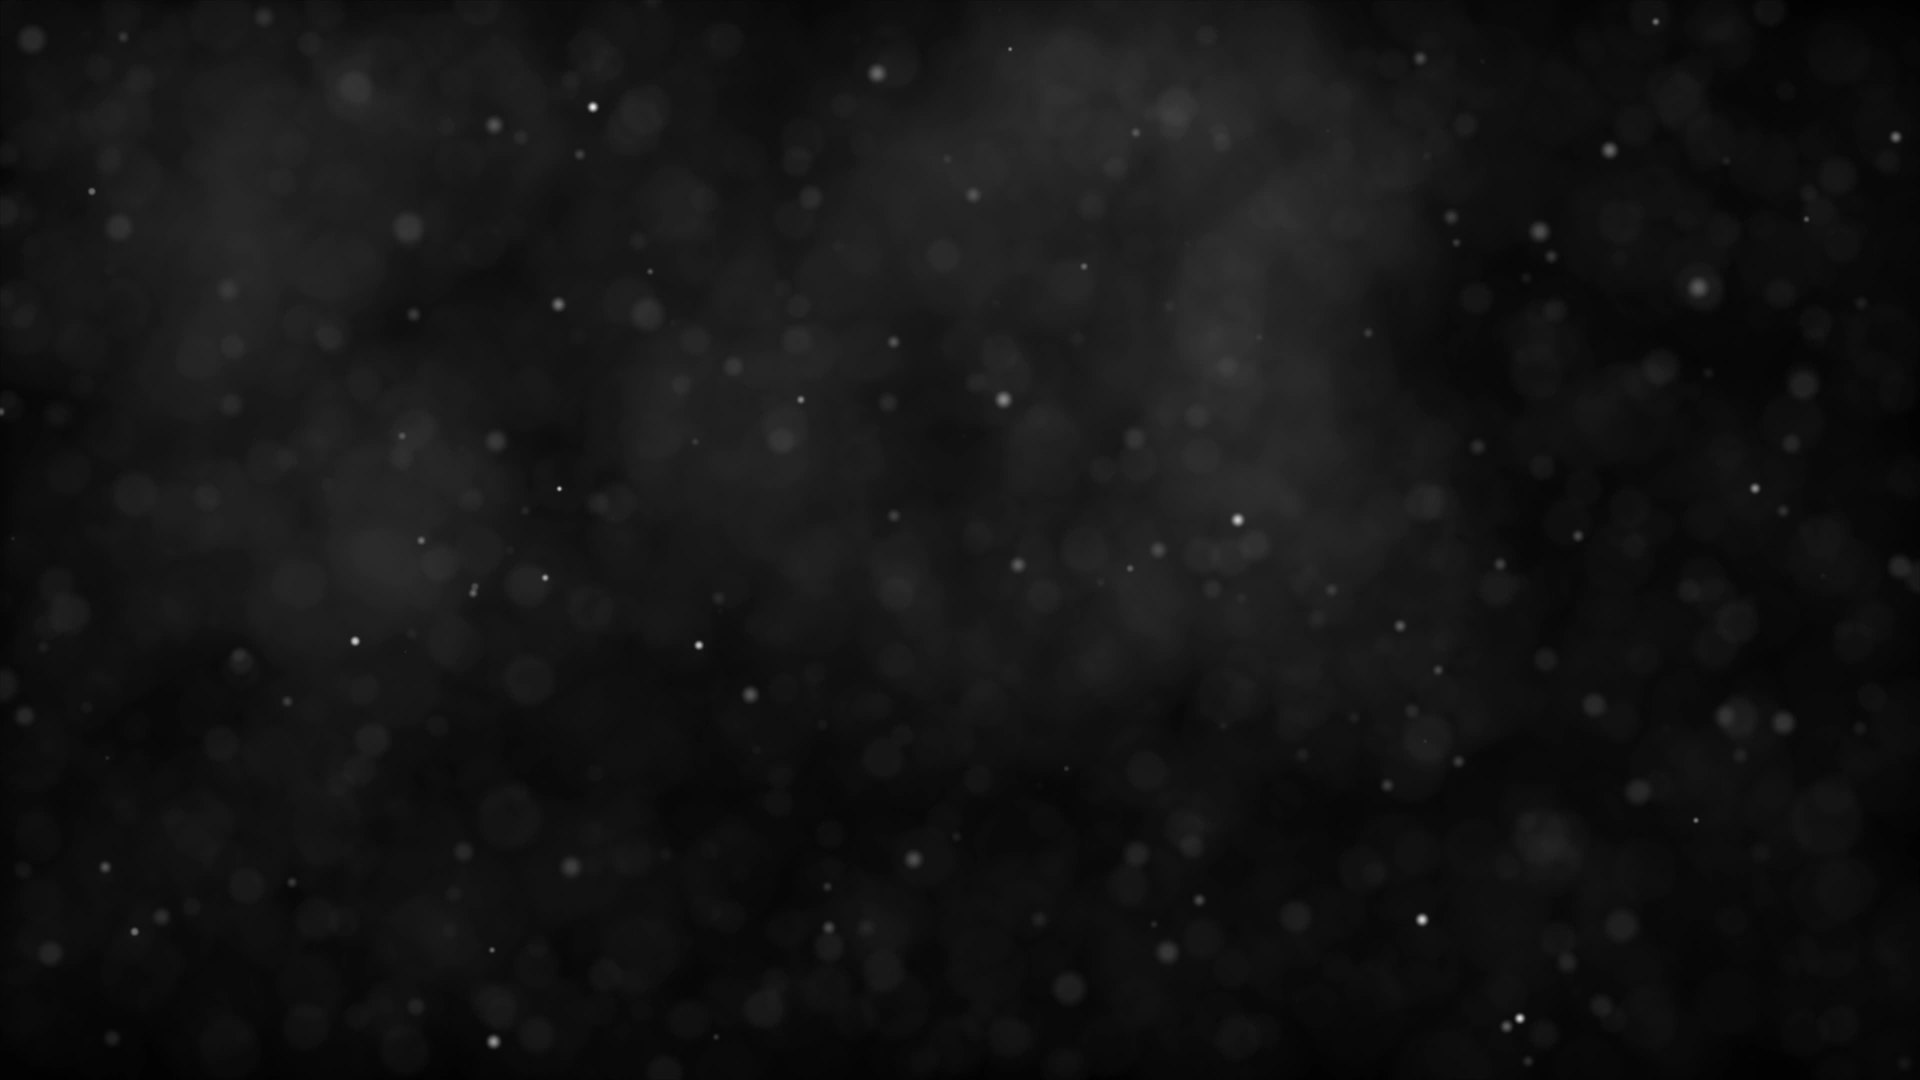 Soft Little Particles Floating And Fading On 4k Dark Background Free Hd Video Clips Stock Video Footage At Videezy